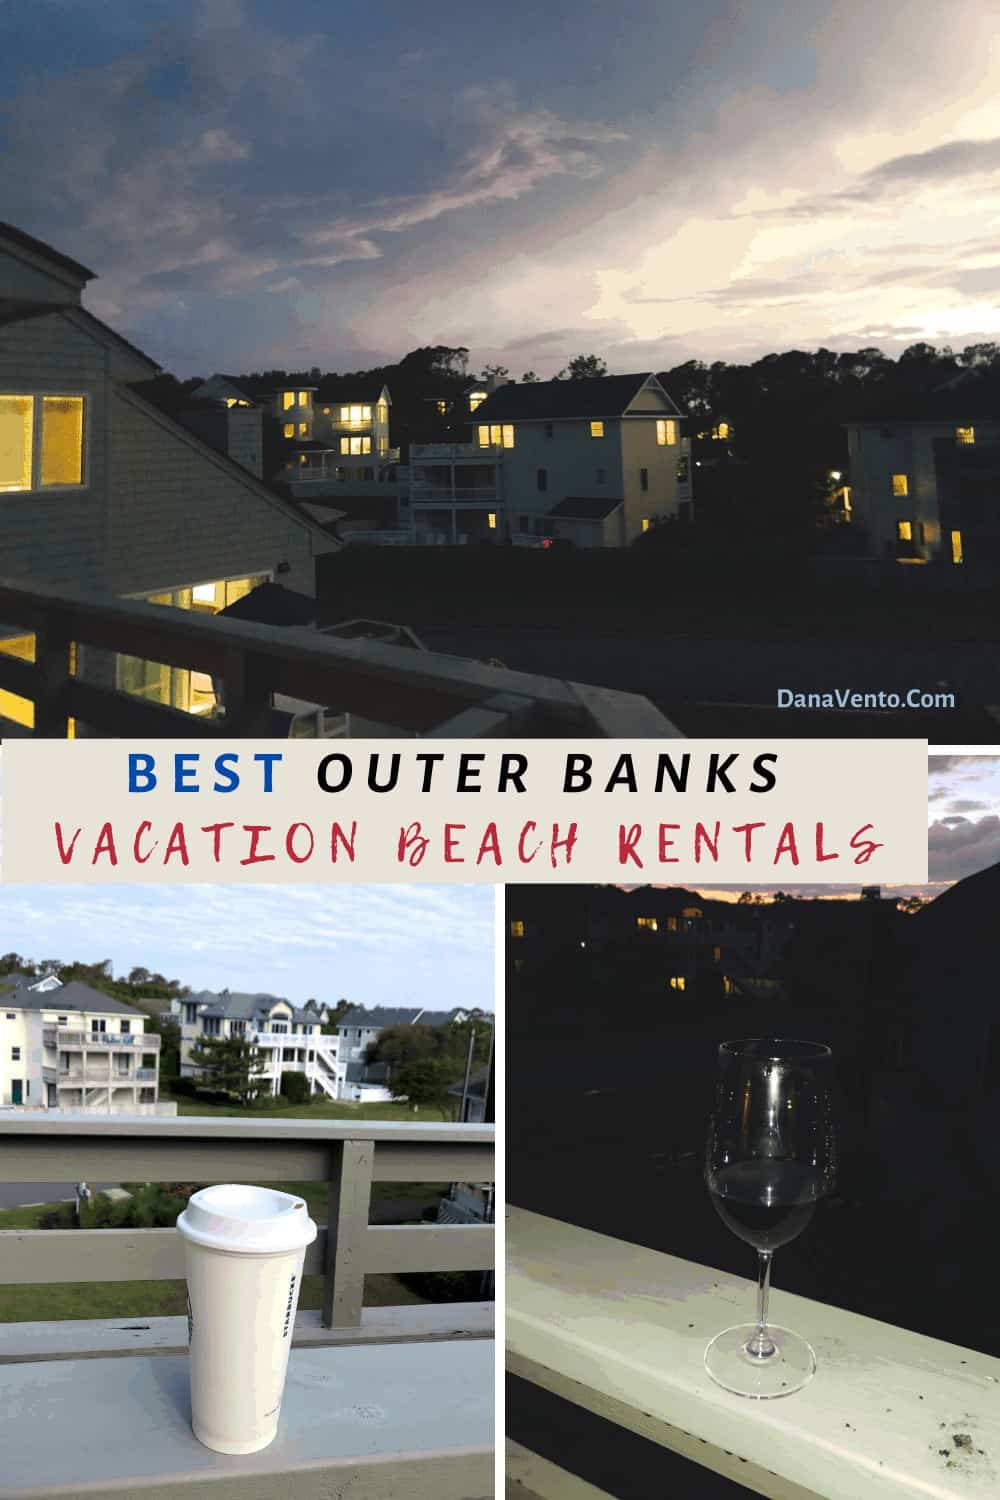 Brindley Beach vacations and rentals from top deck seeing wine and coffee in Corolla